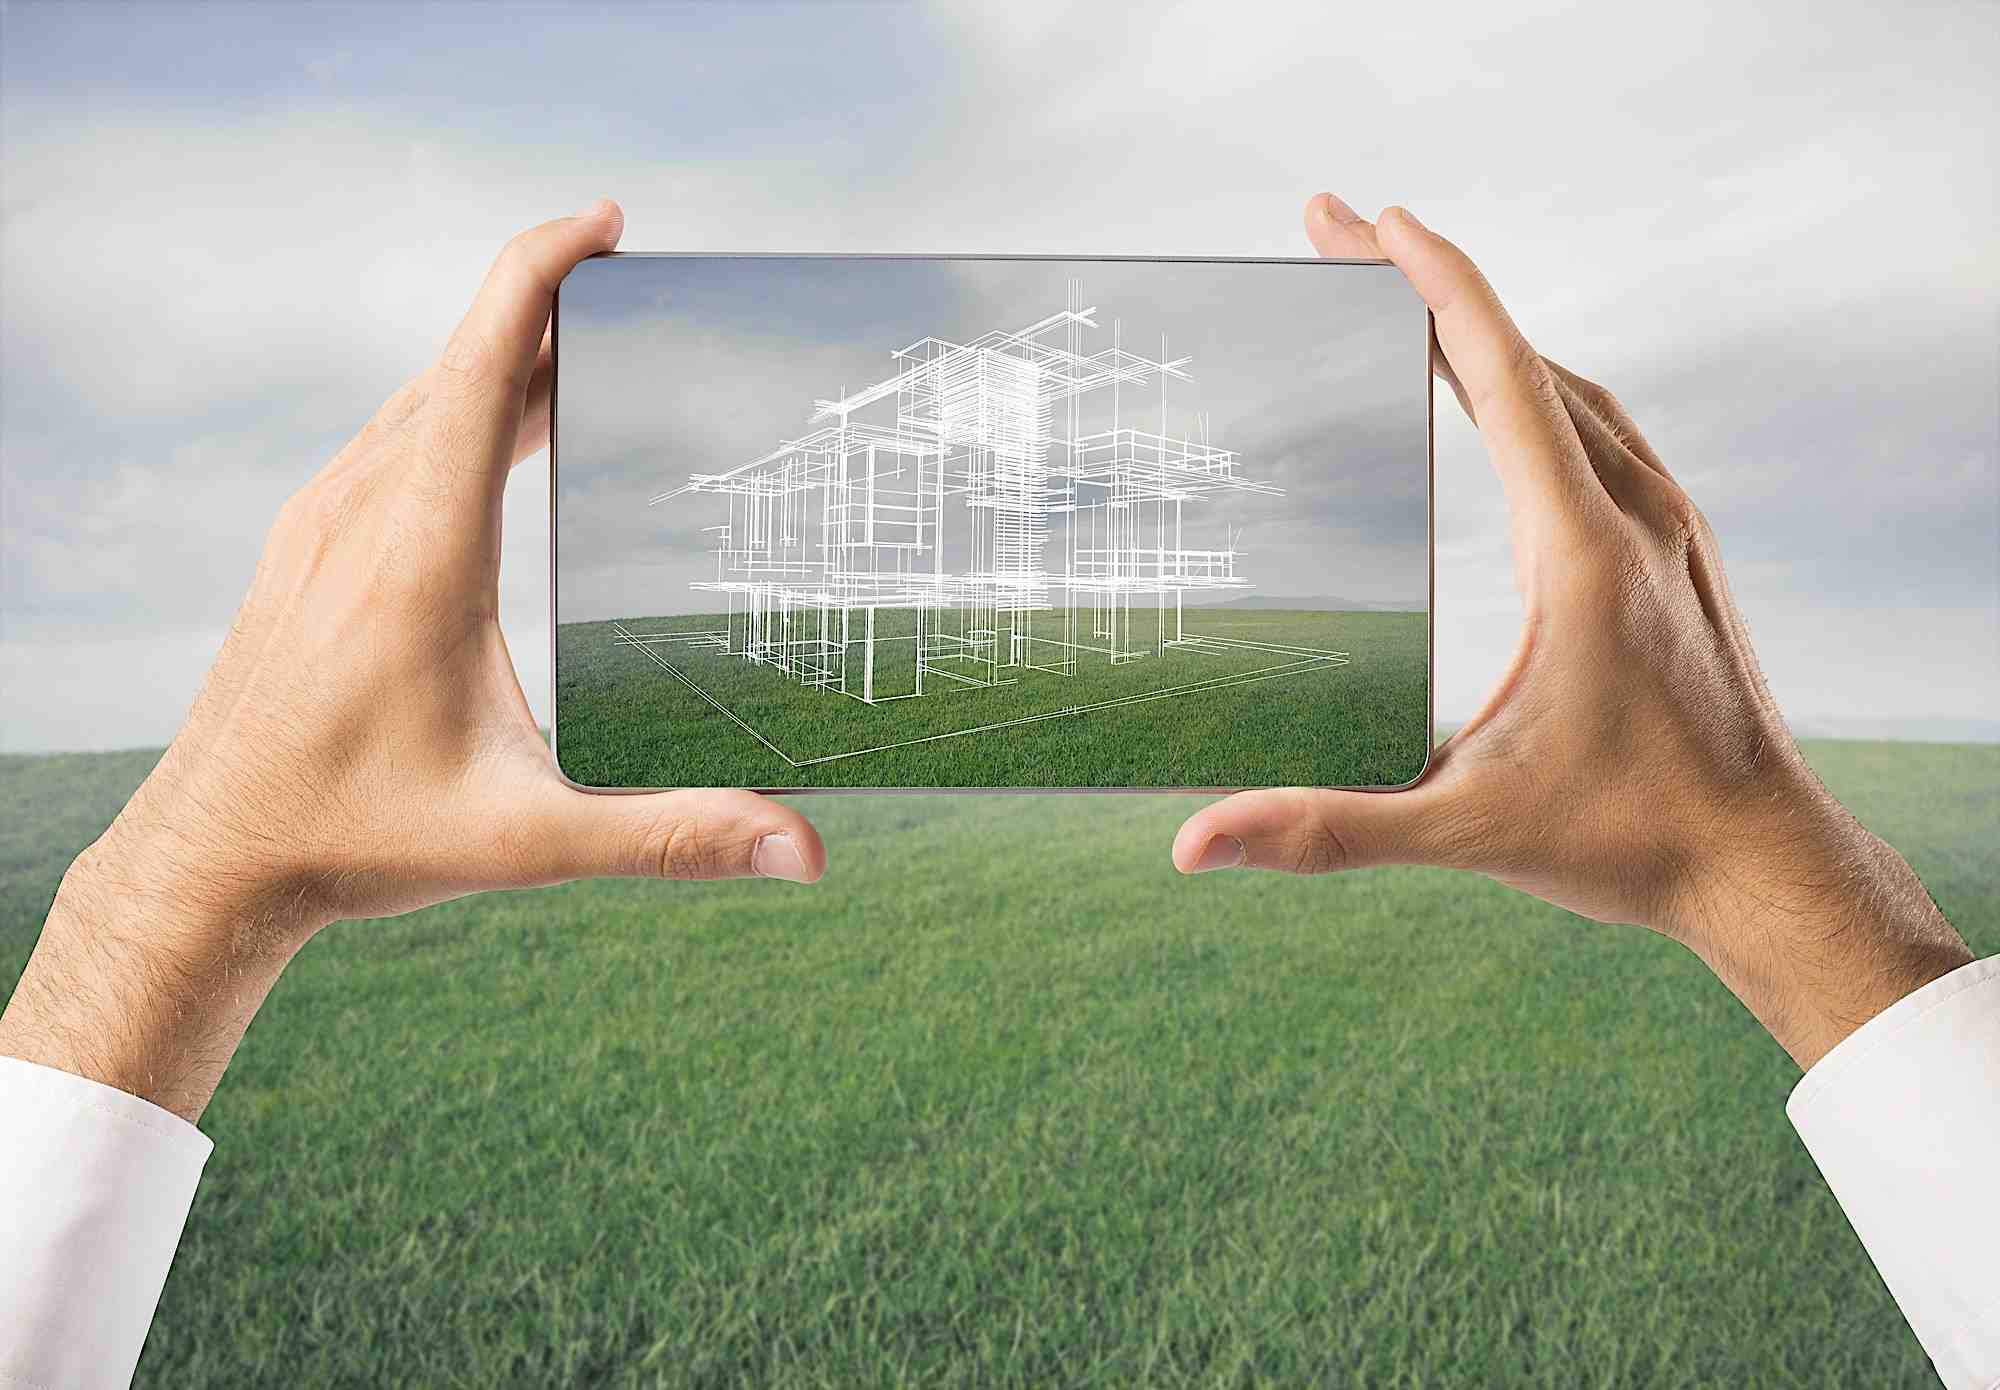 Can anyone become a real estate developer?